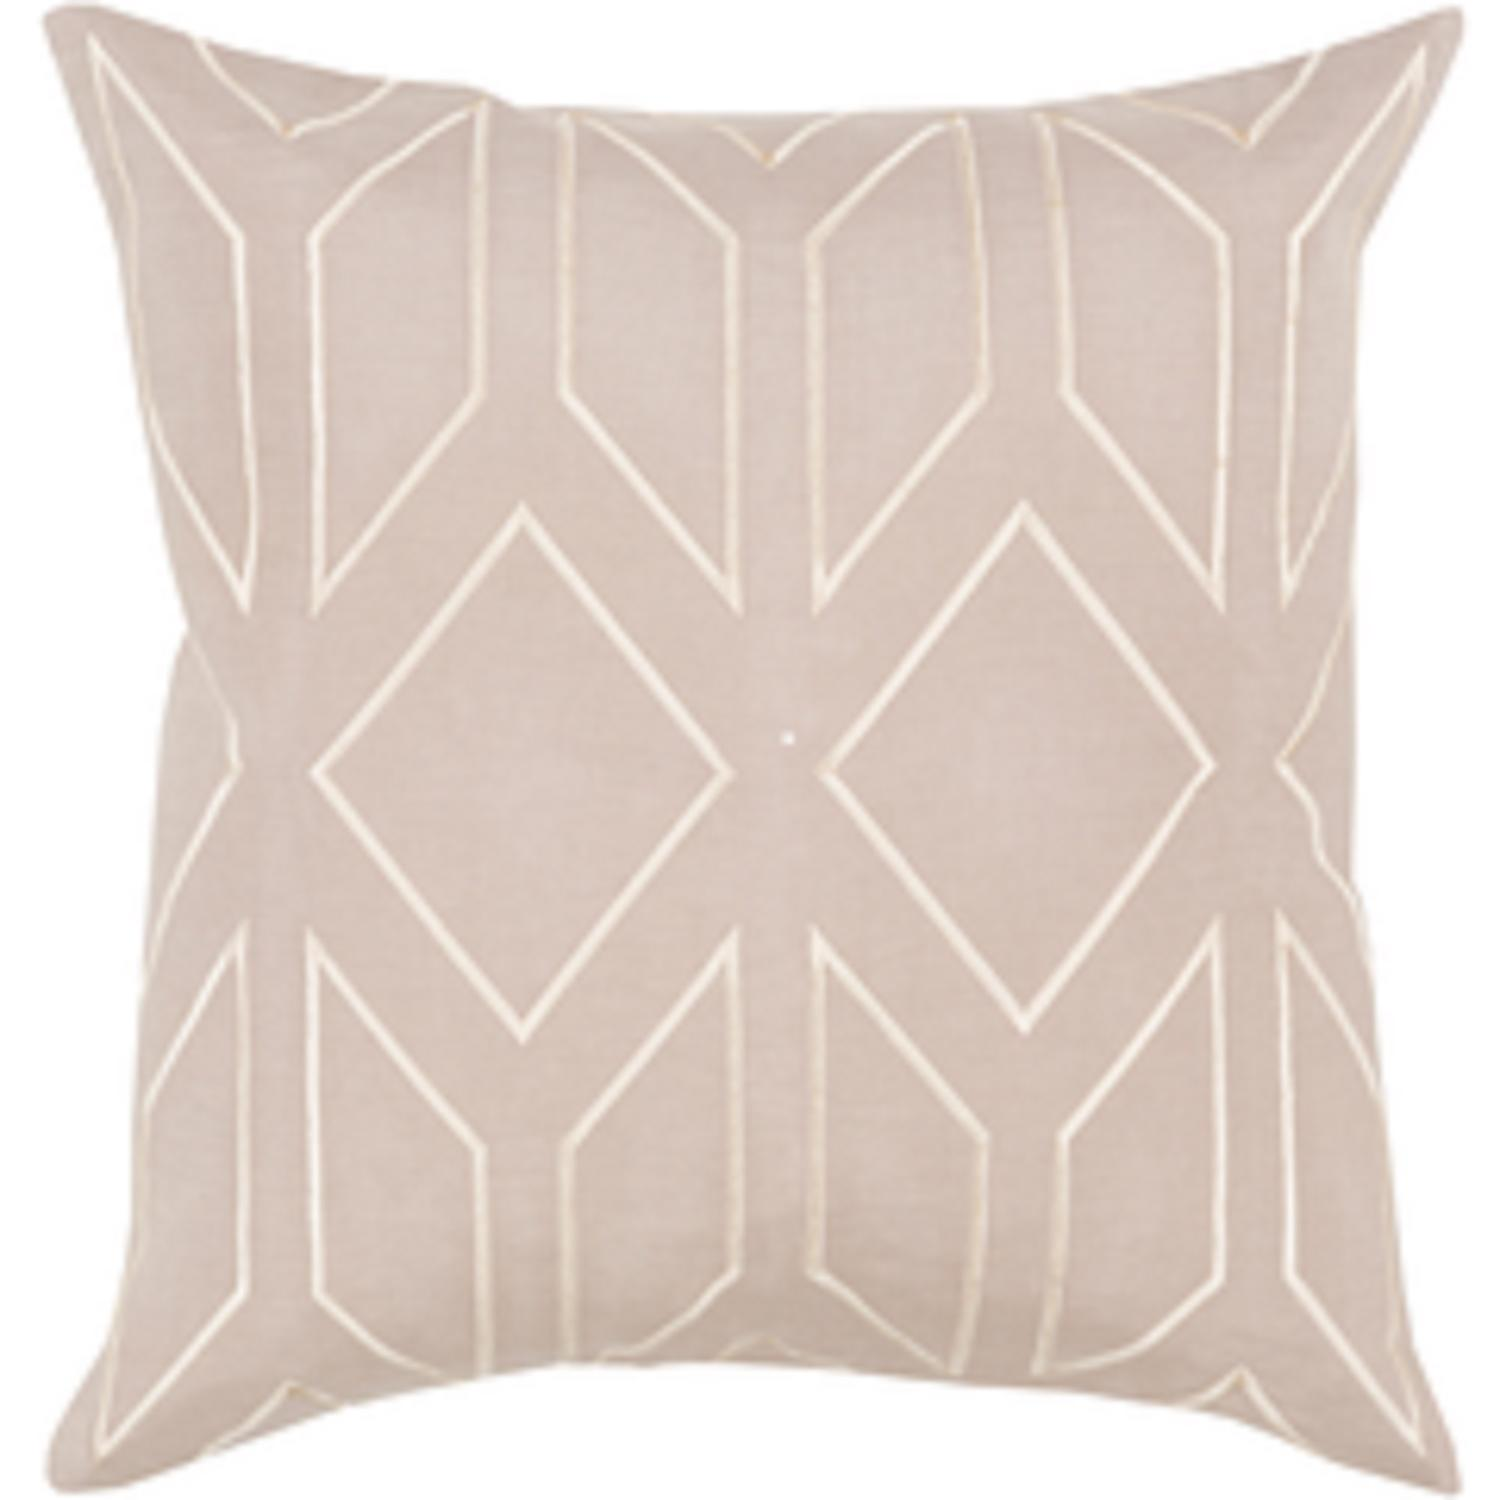 """20"""" Diamond Bliss Pale Taupe and Old Lace Decorative Throw Pillow - Down Filler"""